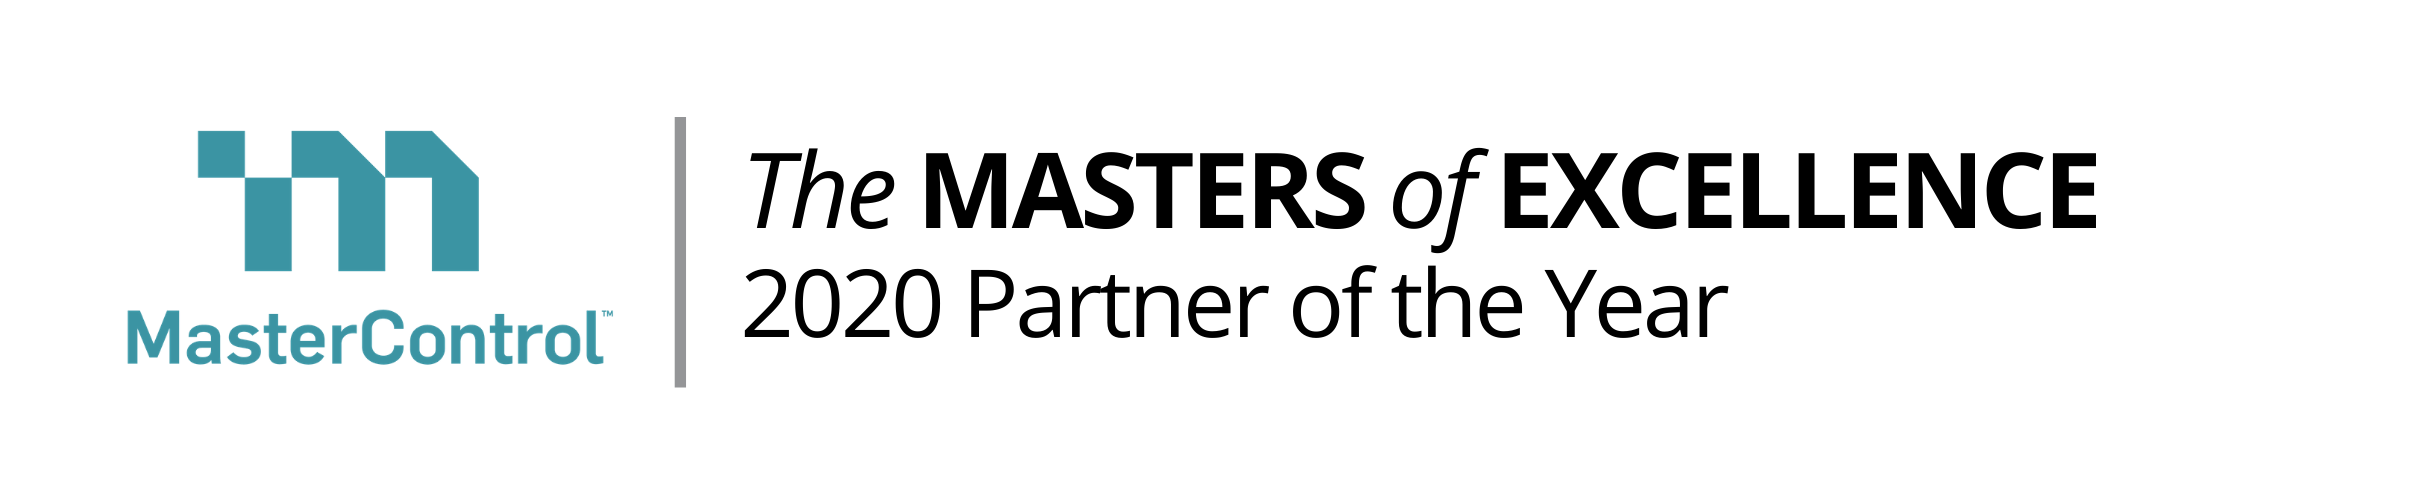 The MASTERS of EXCELLENCE 2020 Partner of the Year